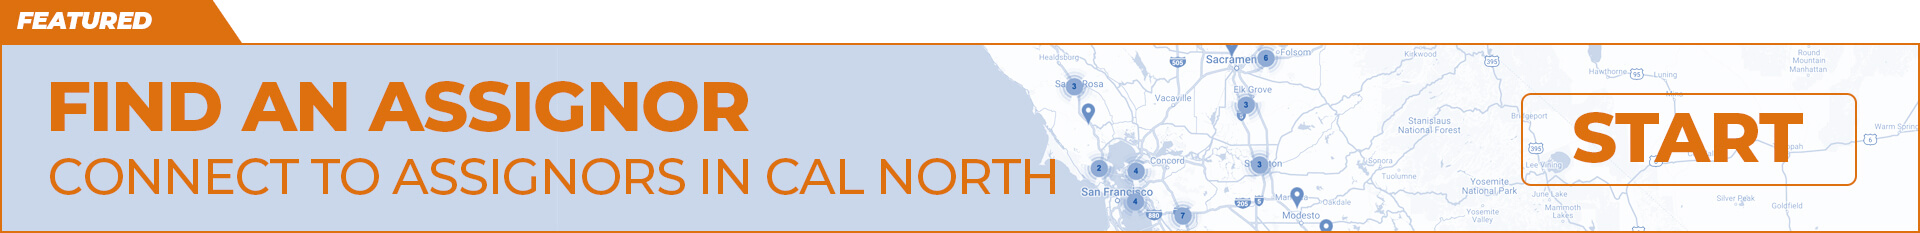 Find an Assignor: Connect to Assignors in Cal North